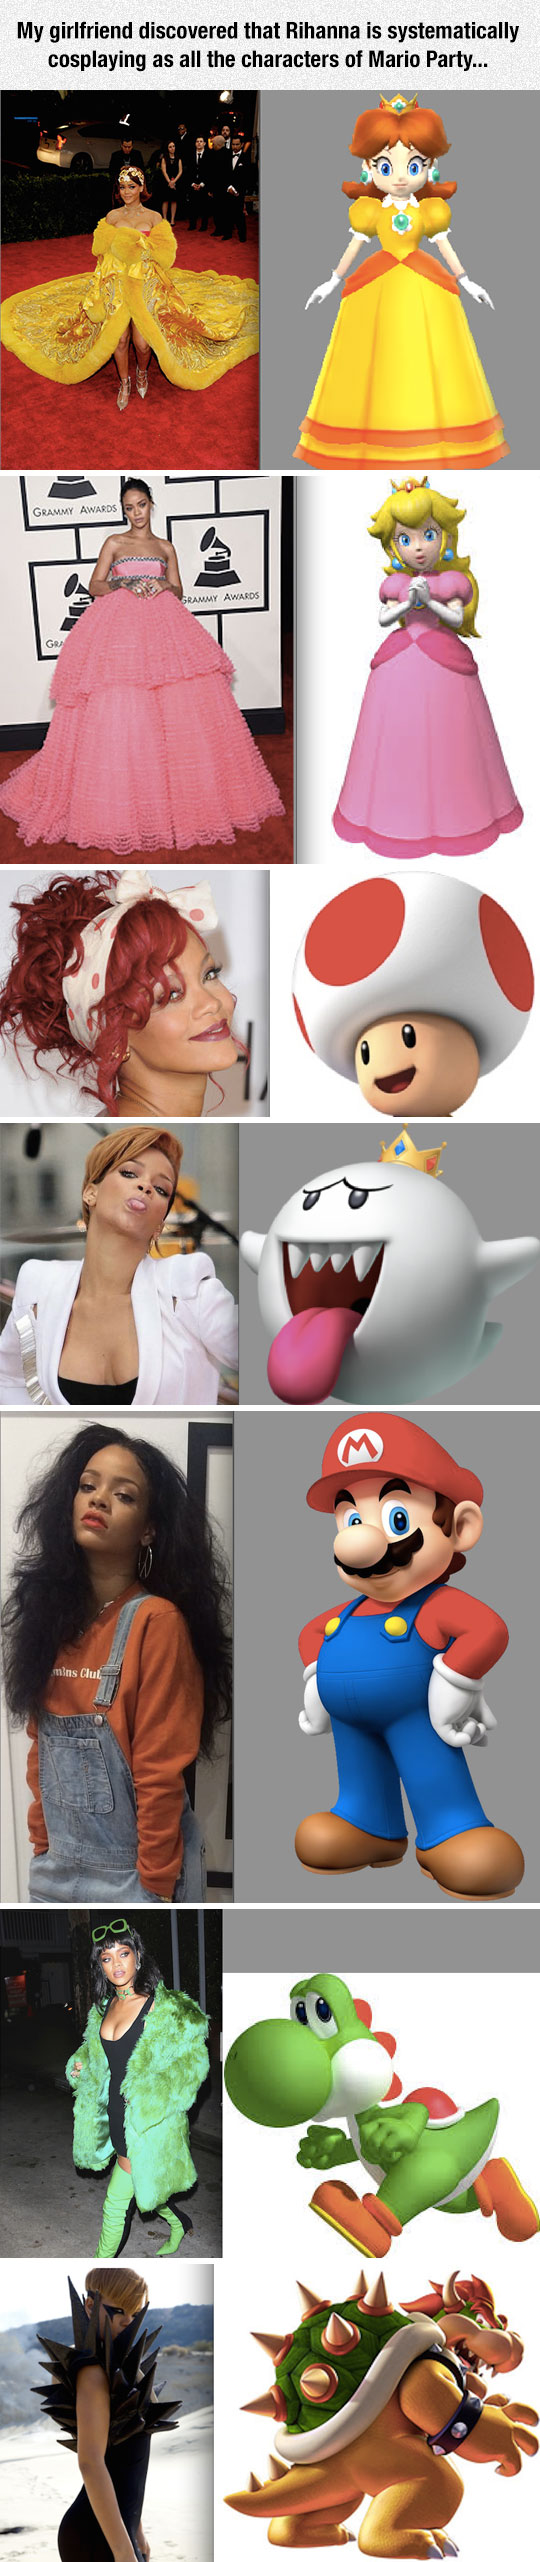 Rihanna Cosplaying Mario Party